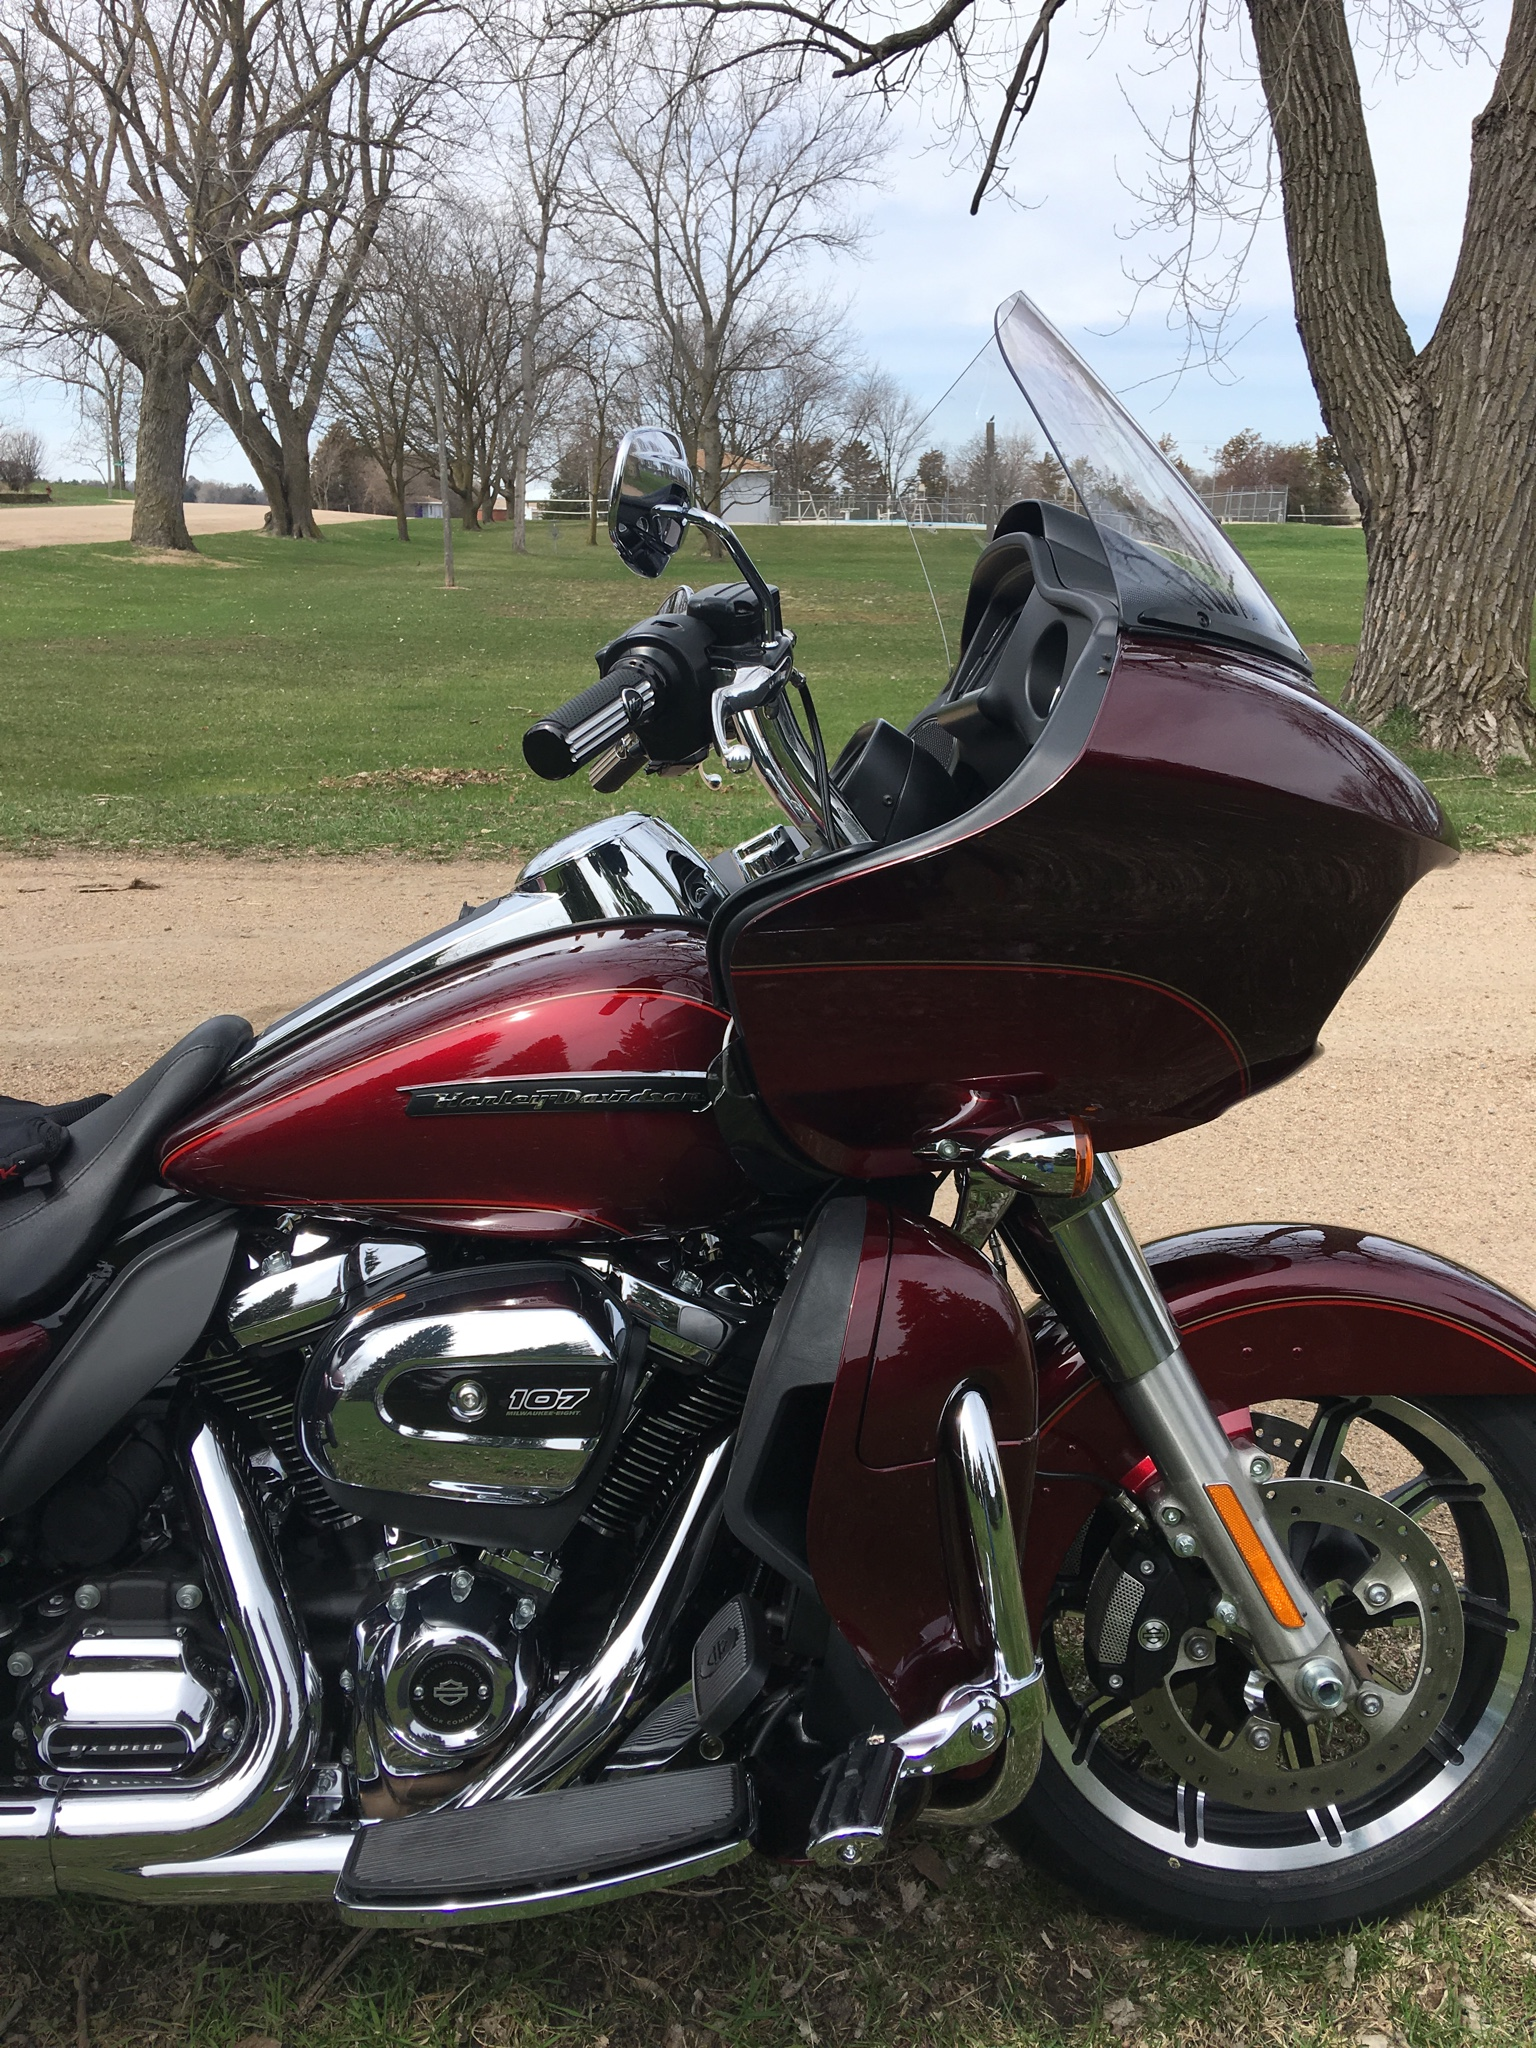 Chizeled LO on RGU     - Page 2 - Road Glide Forums 977fd3888edd0